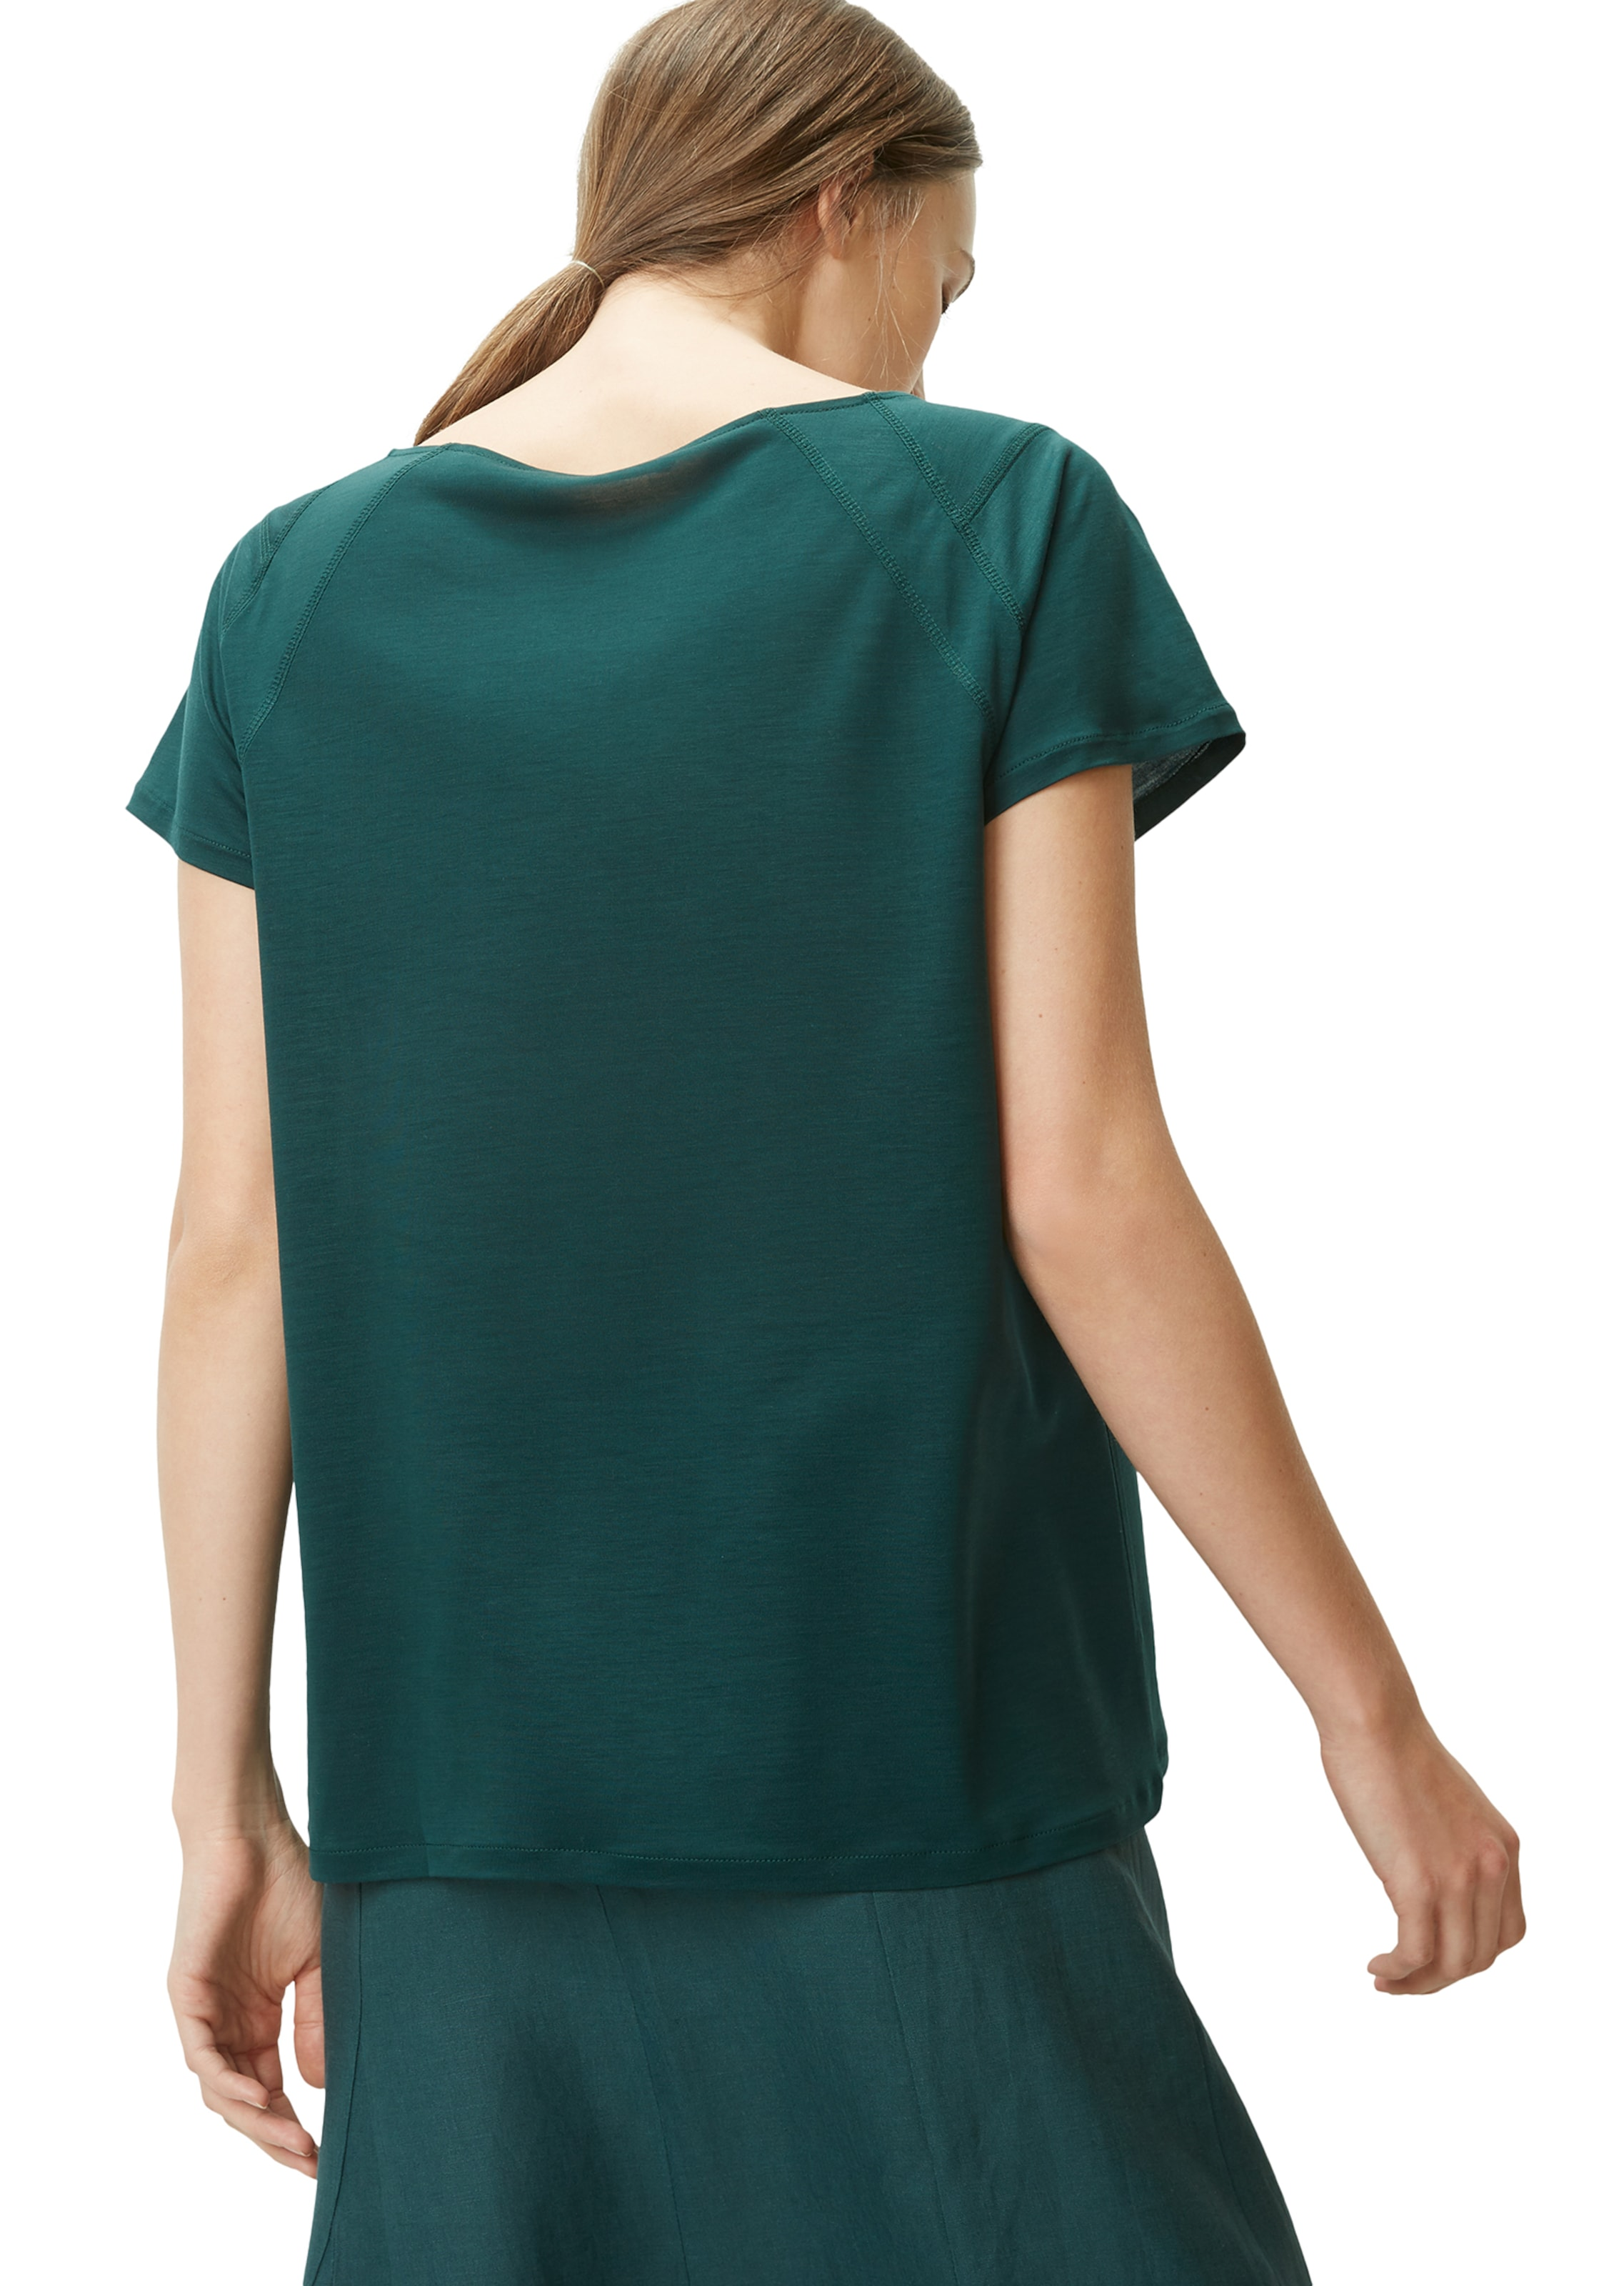 Marc O'polo Pure T shirt In Petrol vn0wmN8